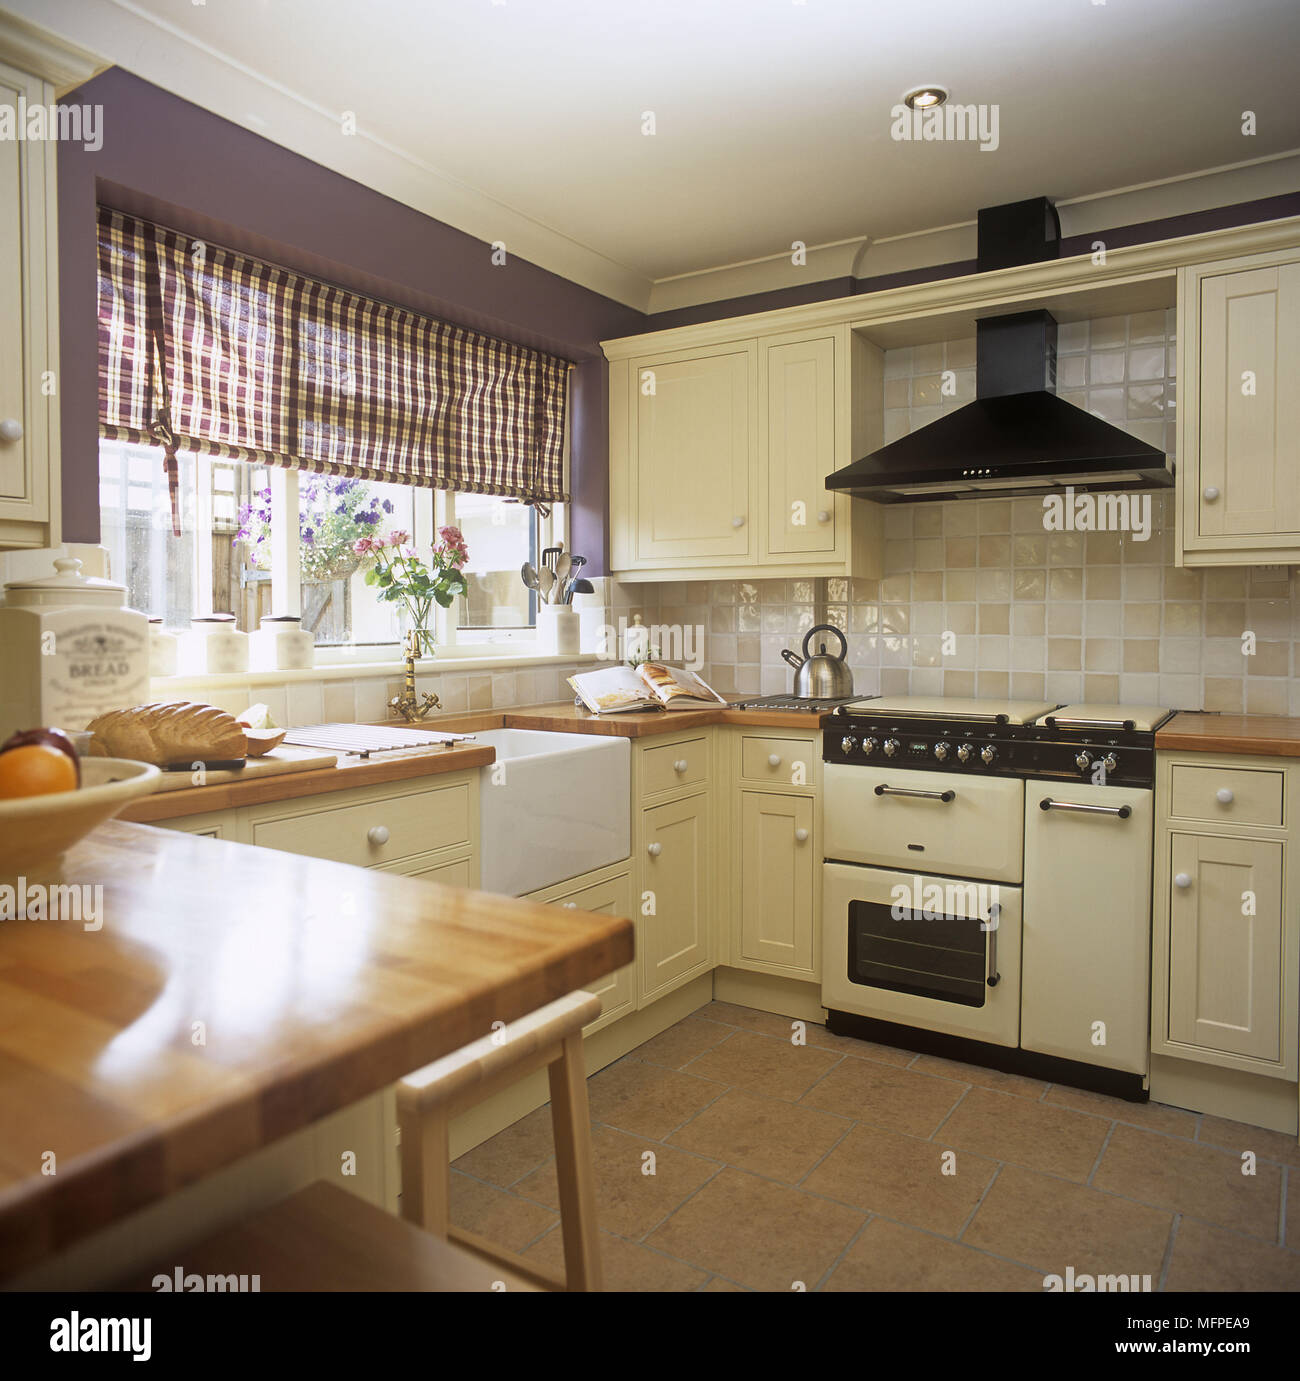 Country Kitchen Range: An Overview Of A Traditional Country Kitchen Range Oven Belfast Sink Stock Photo: 181817729